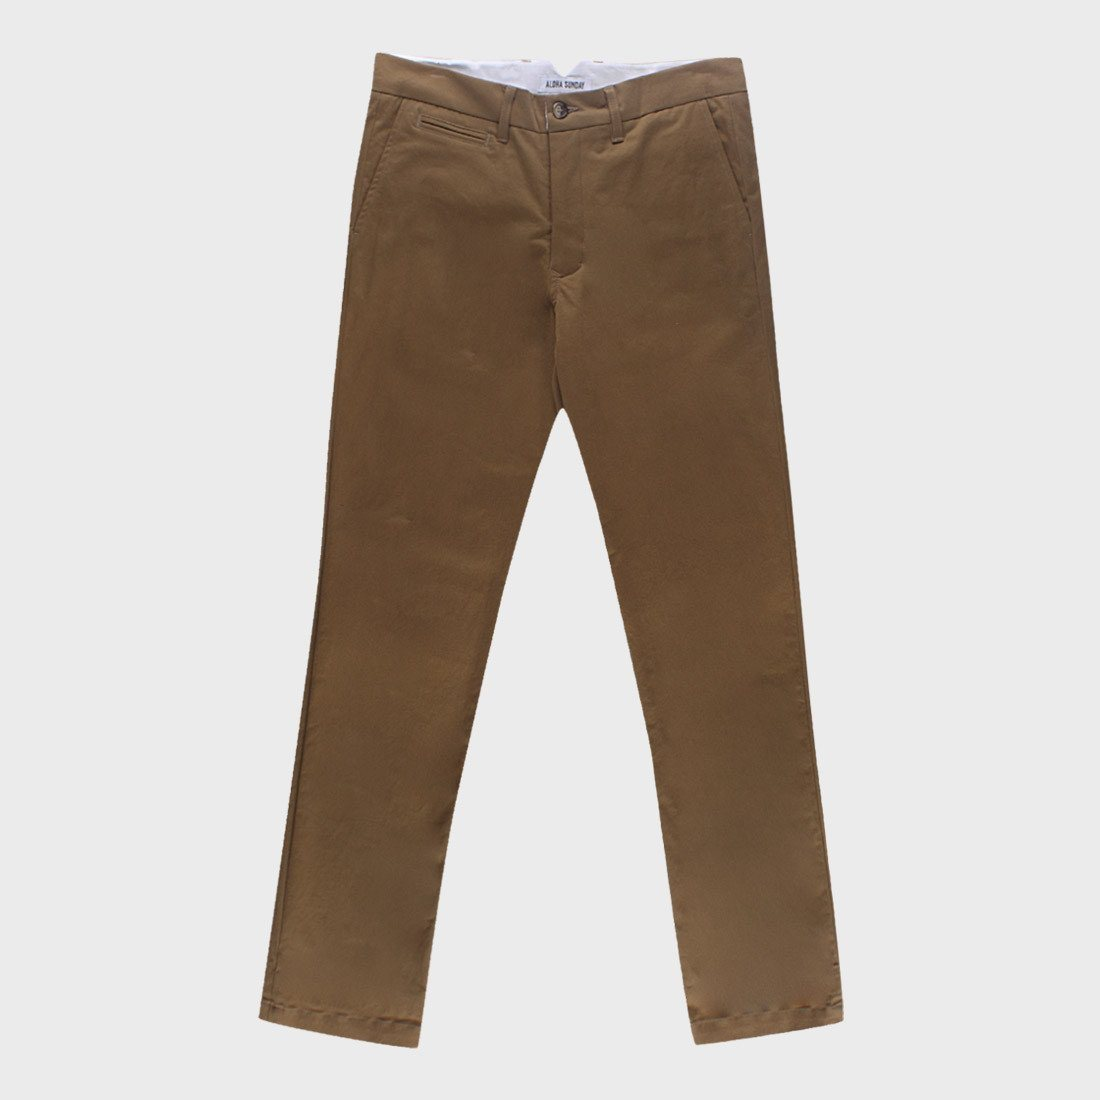 Aloha Sunday Pacific Stretch Dark Khaki